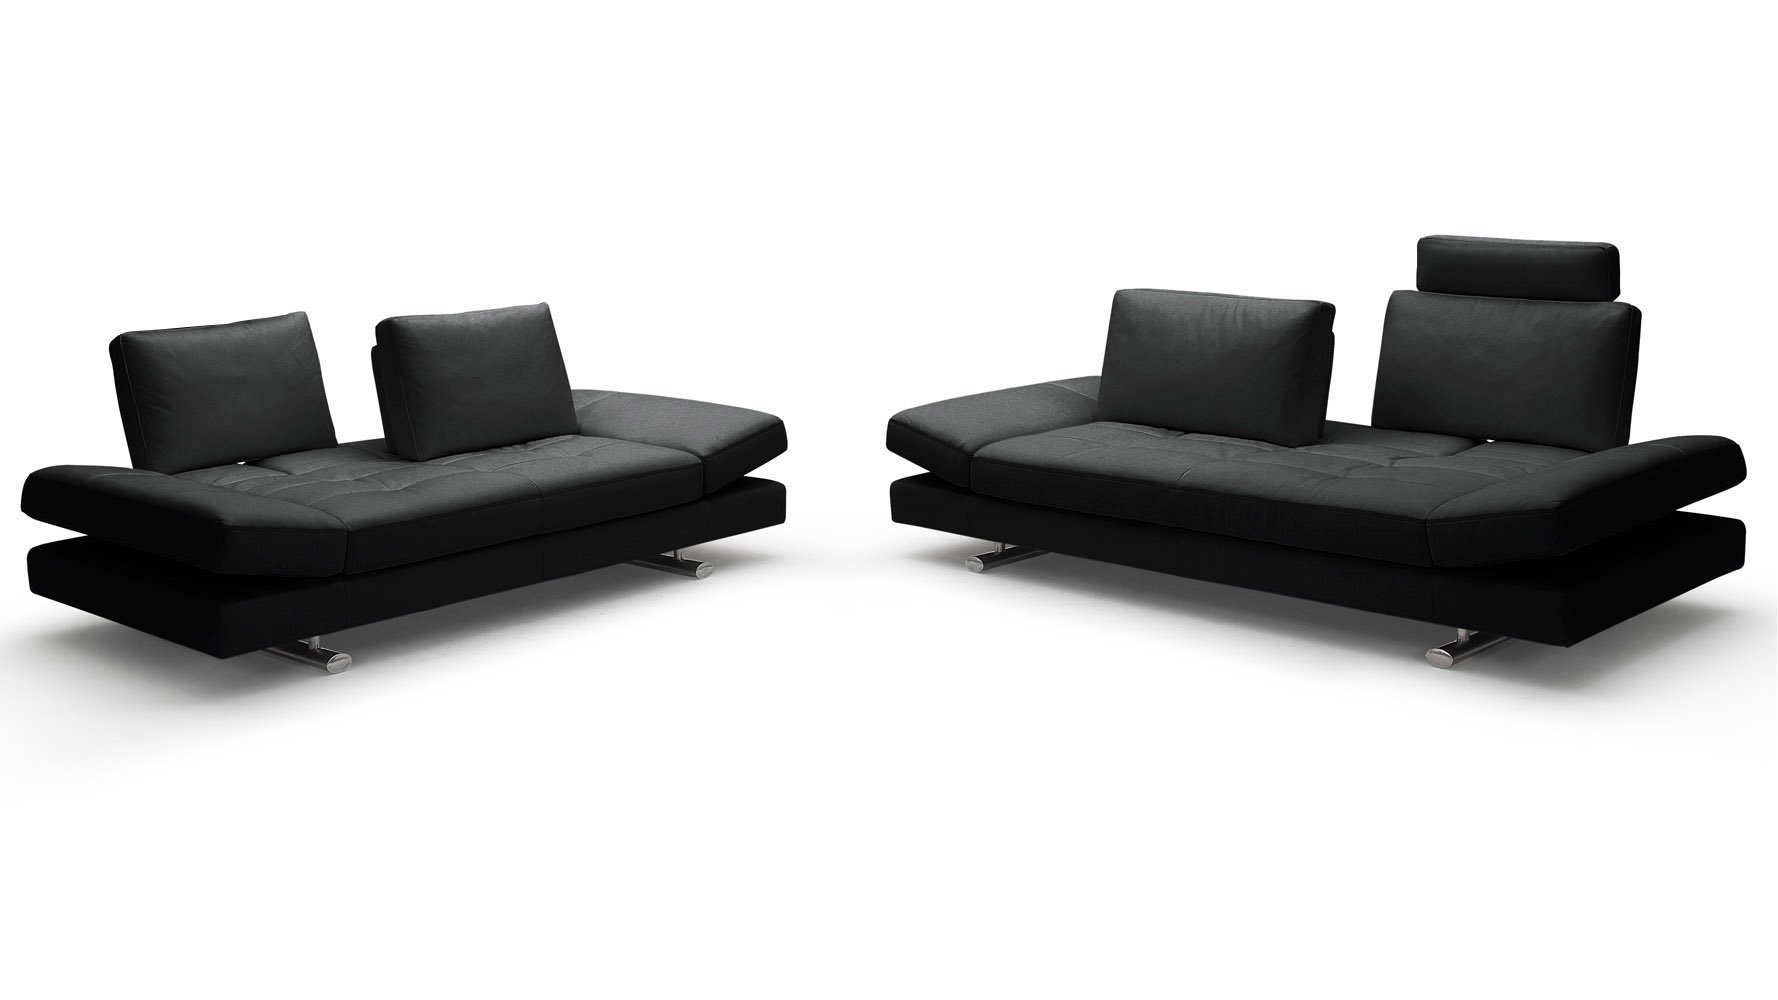 Products in Sofas | Sofa Sets, Seating, LIVING on Zuri Furniture